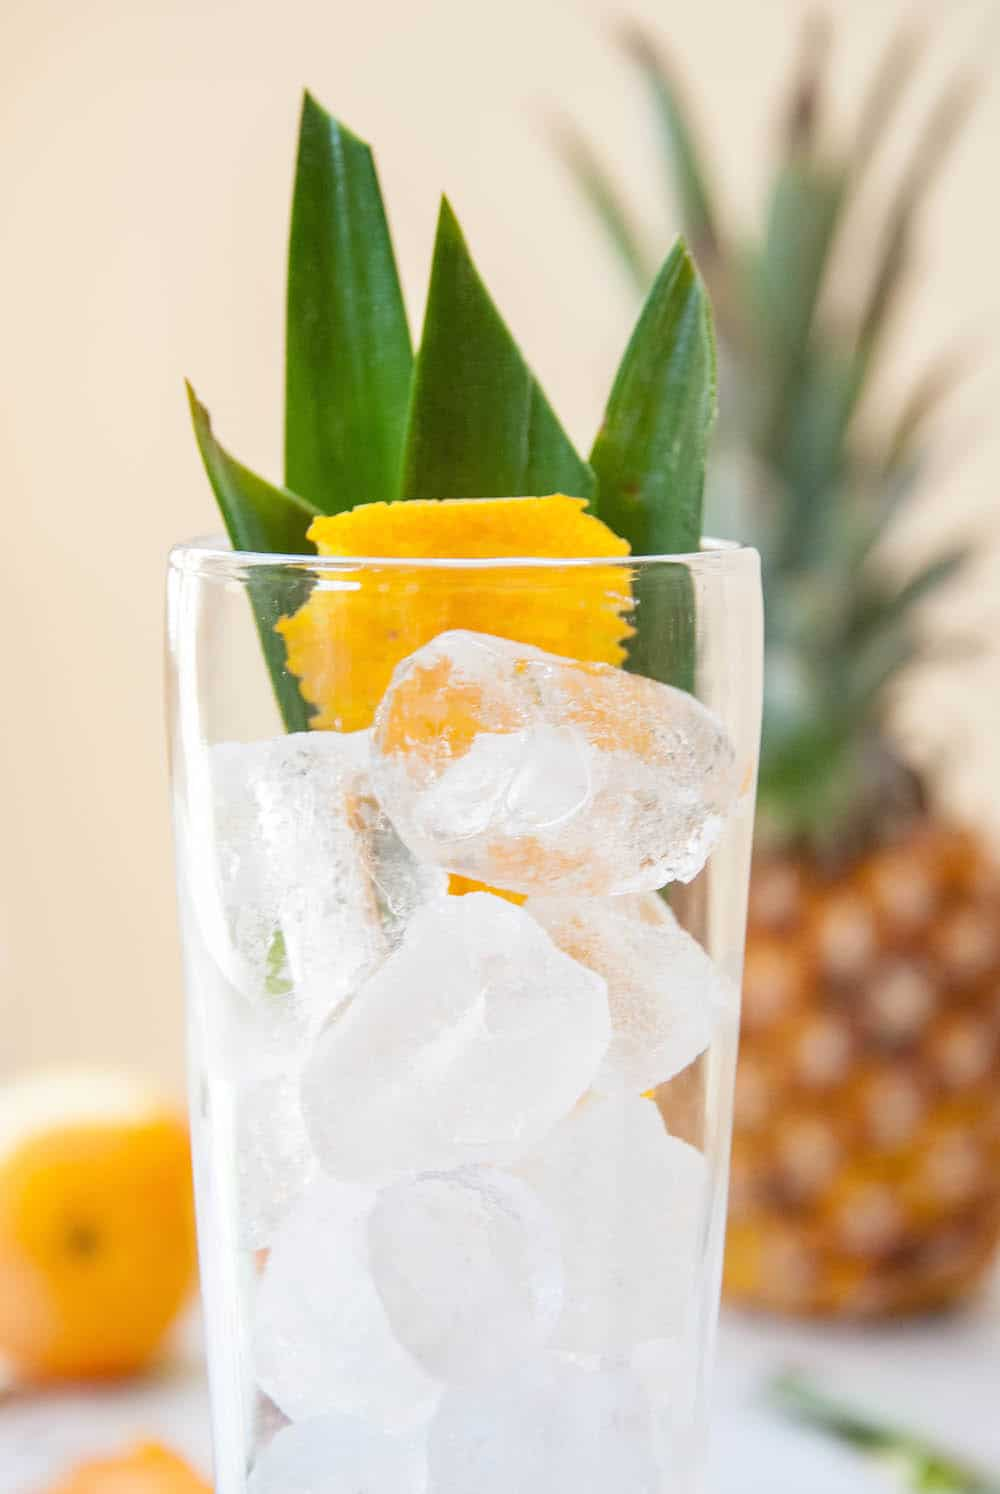 Island-Inspired Edible Cocktail Garnish: Pineapple Leaves + Citrus Peel